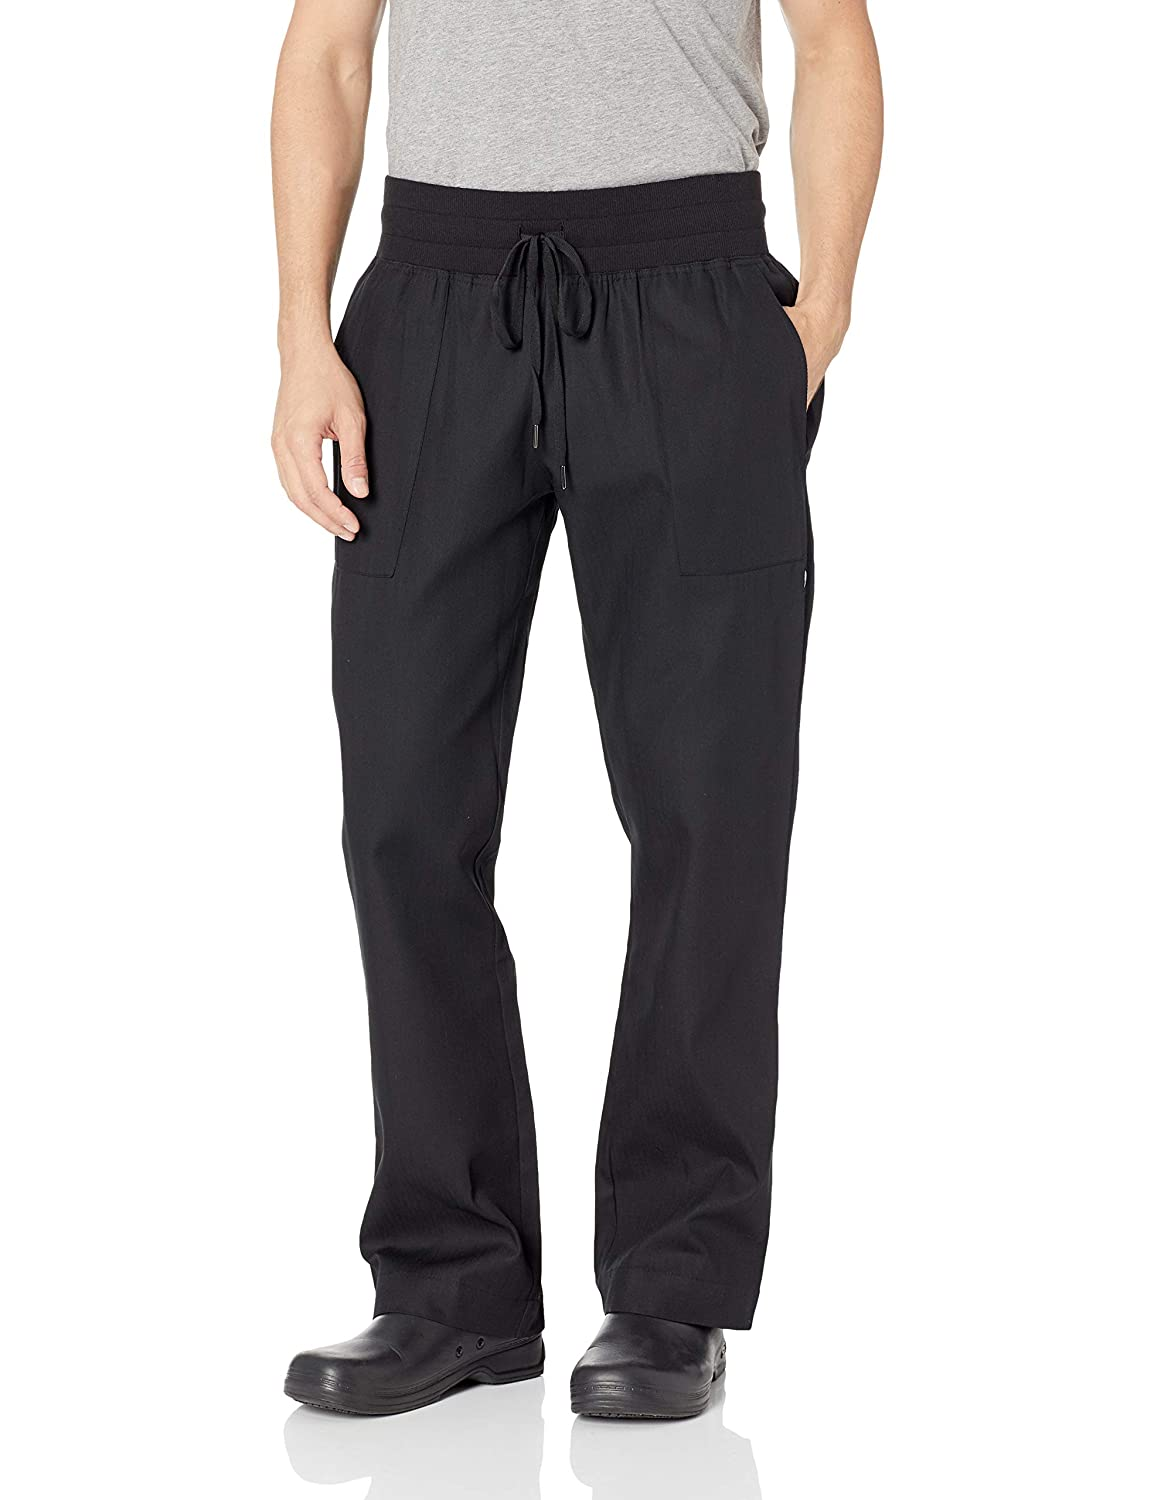 Chef Works Women's Comfi Pants PW004-P